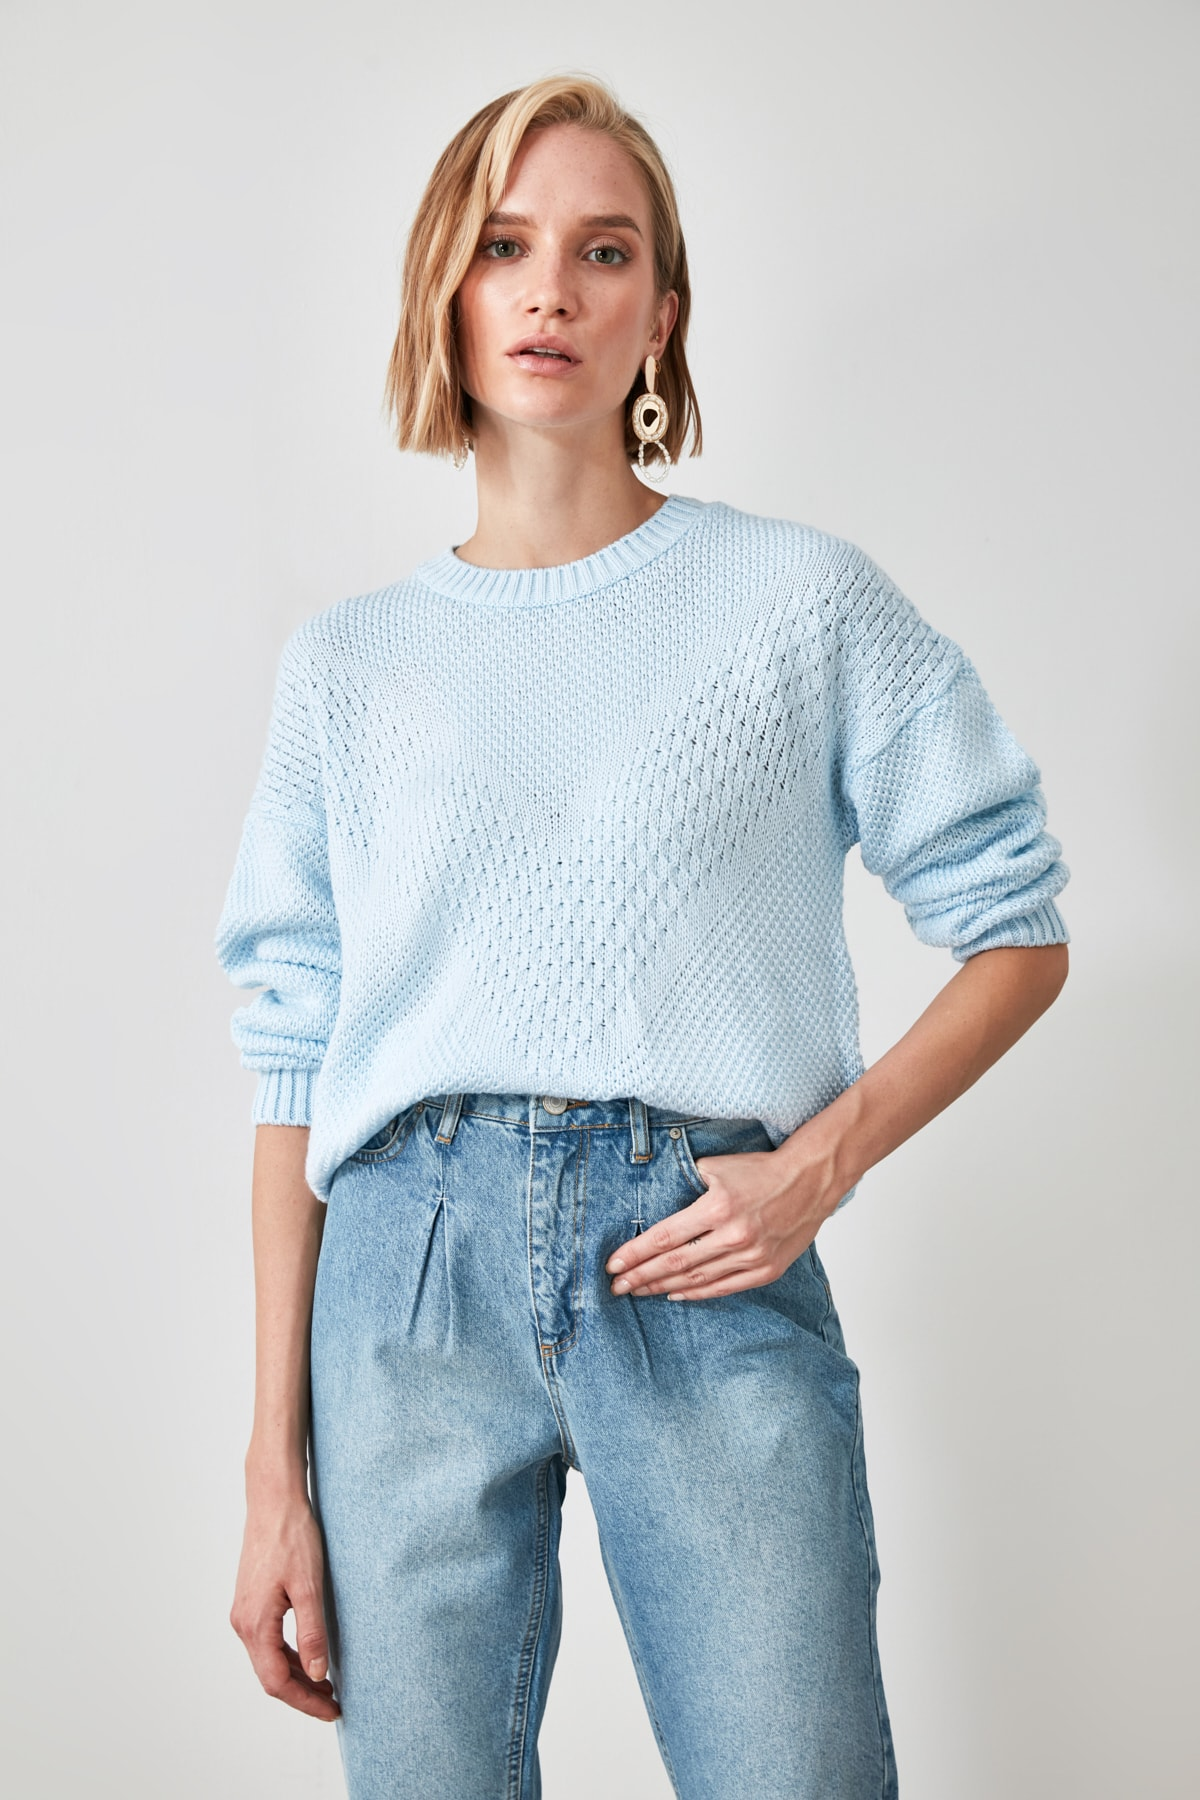 Trendyol Mesh Detailed Knitwear Sweater TWOAW21KZ1809